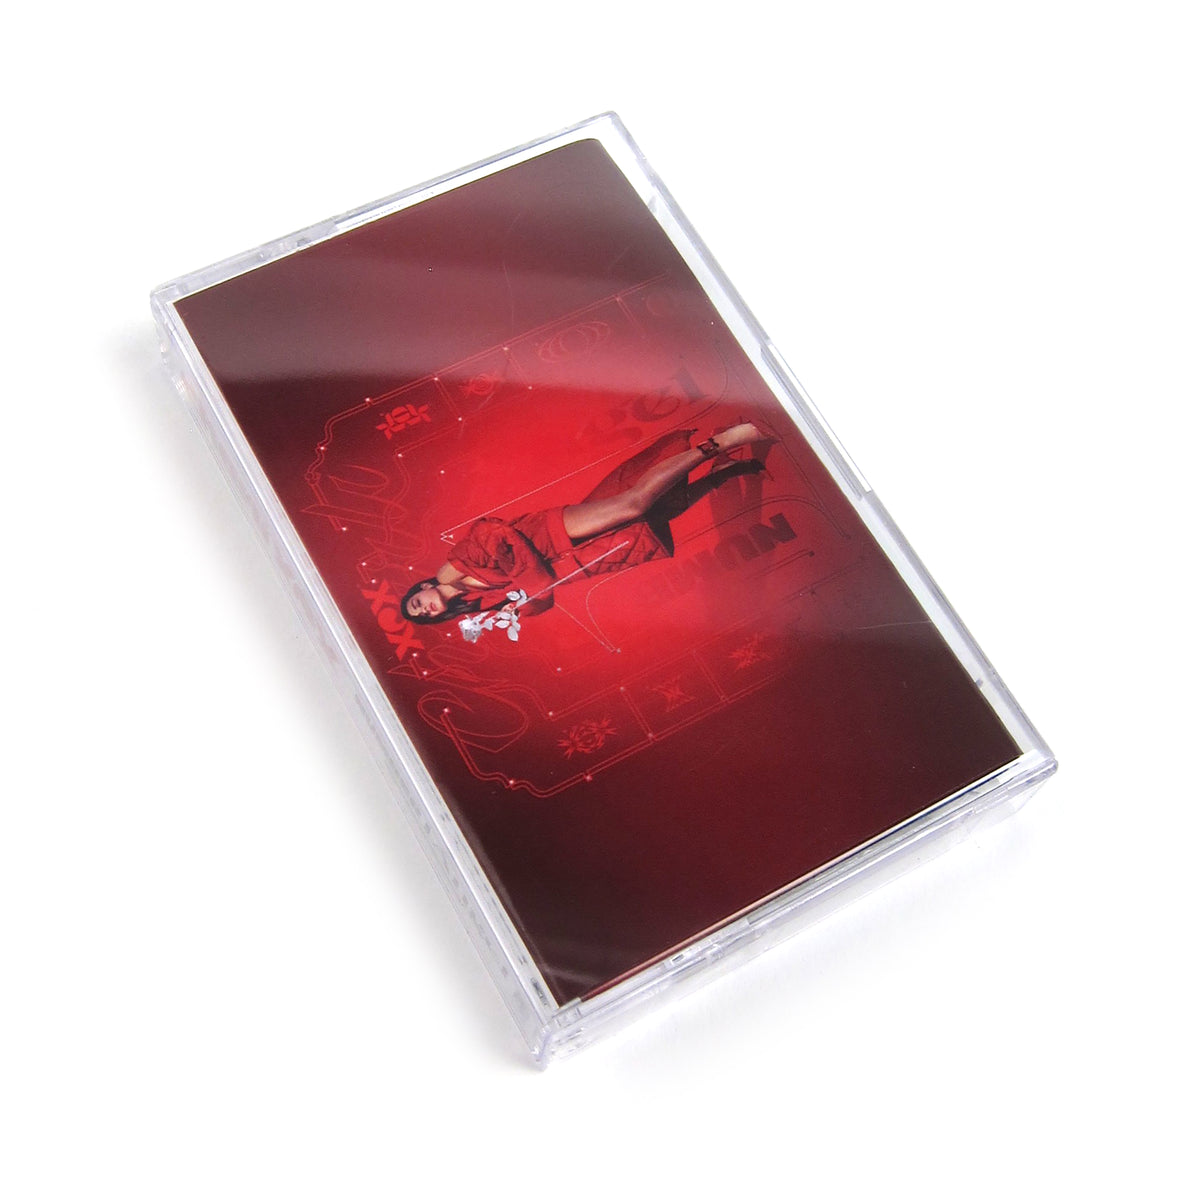 Charli XCX: Number 1 Angel / Pop 2 Cassette Tape